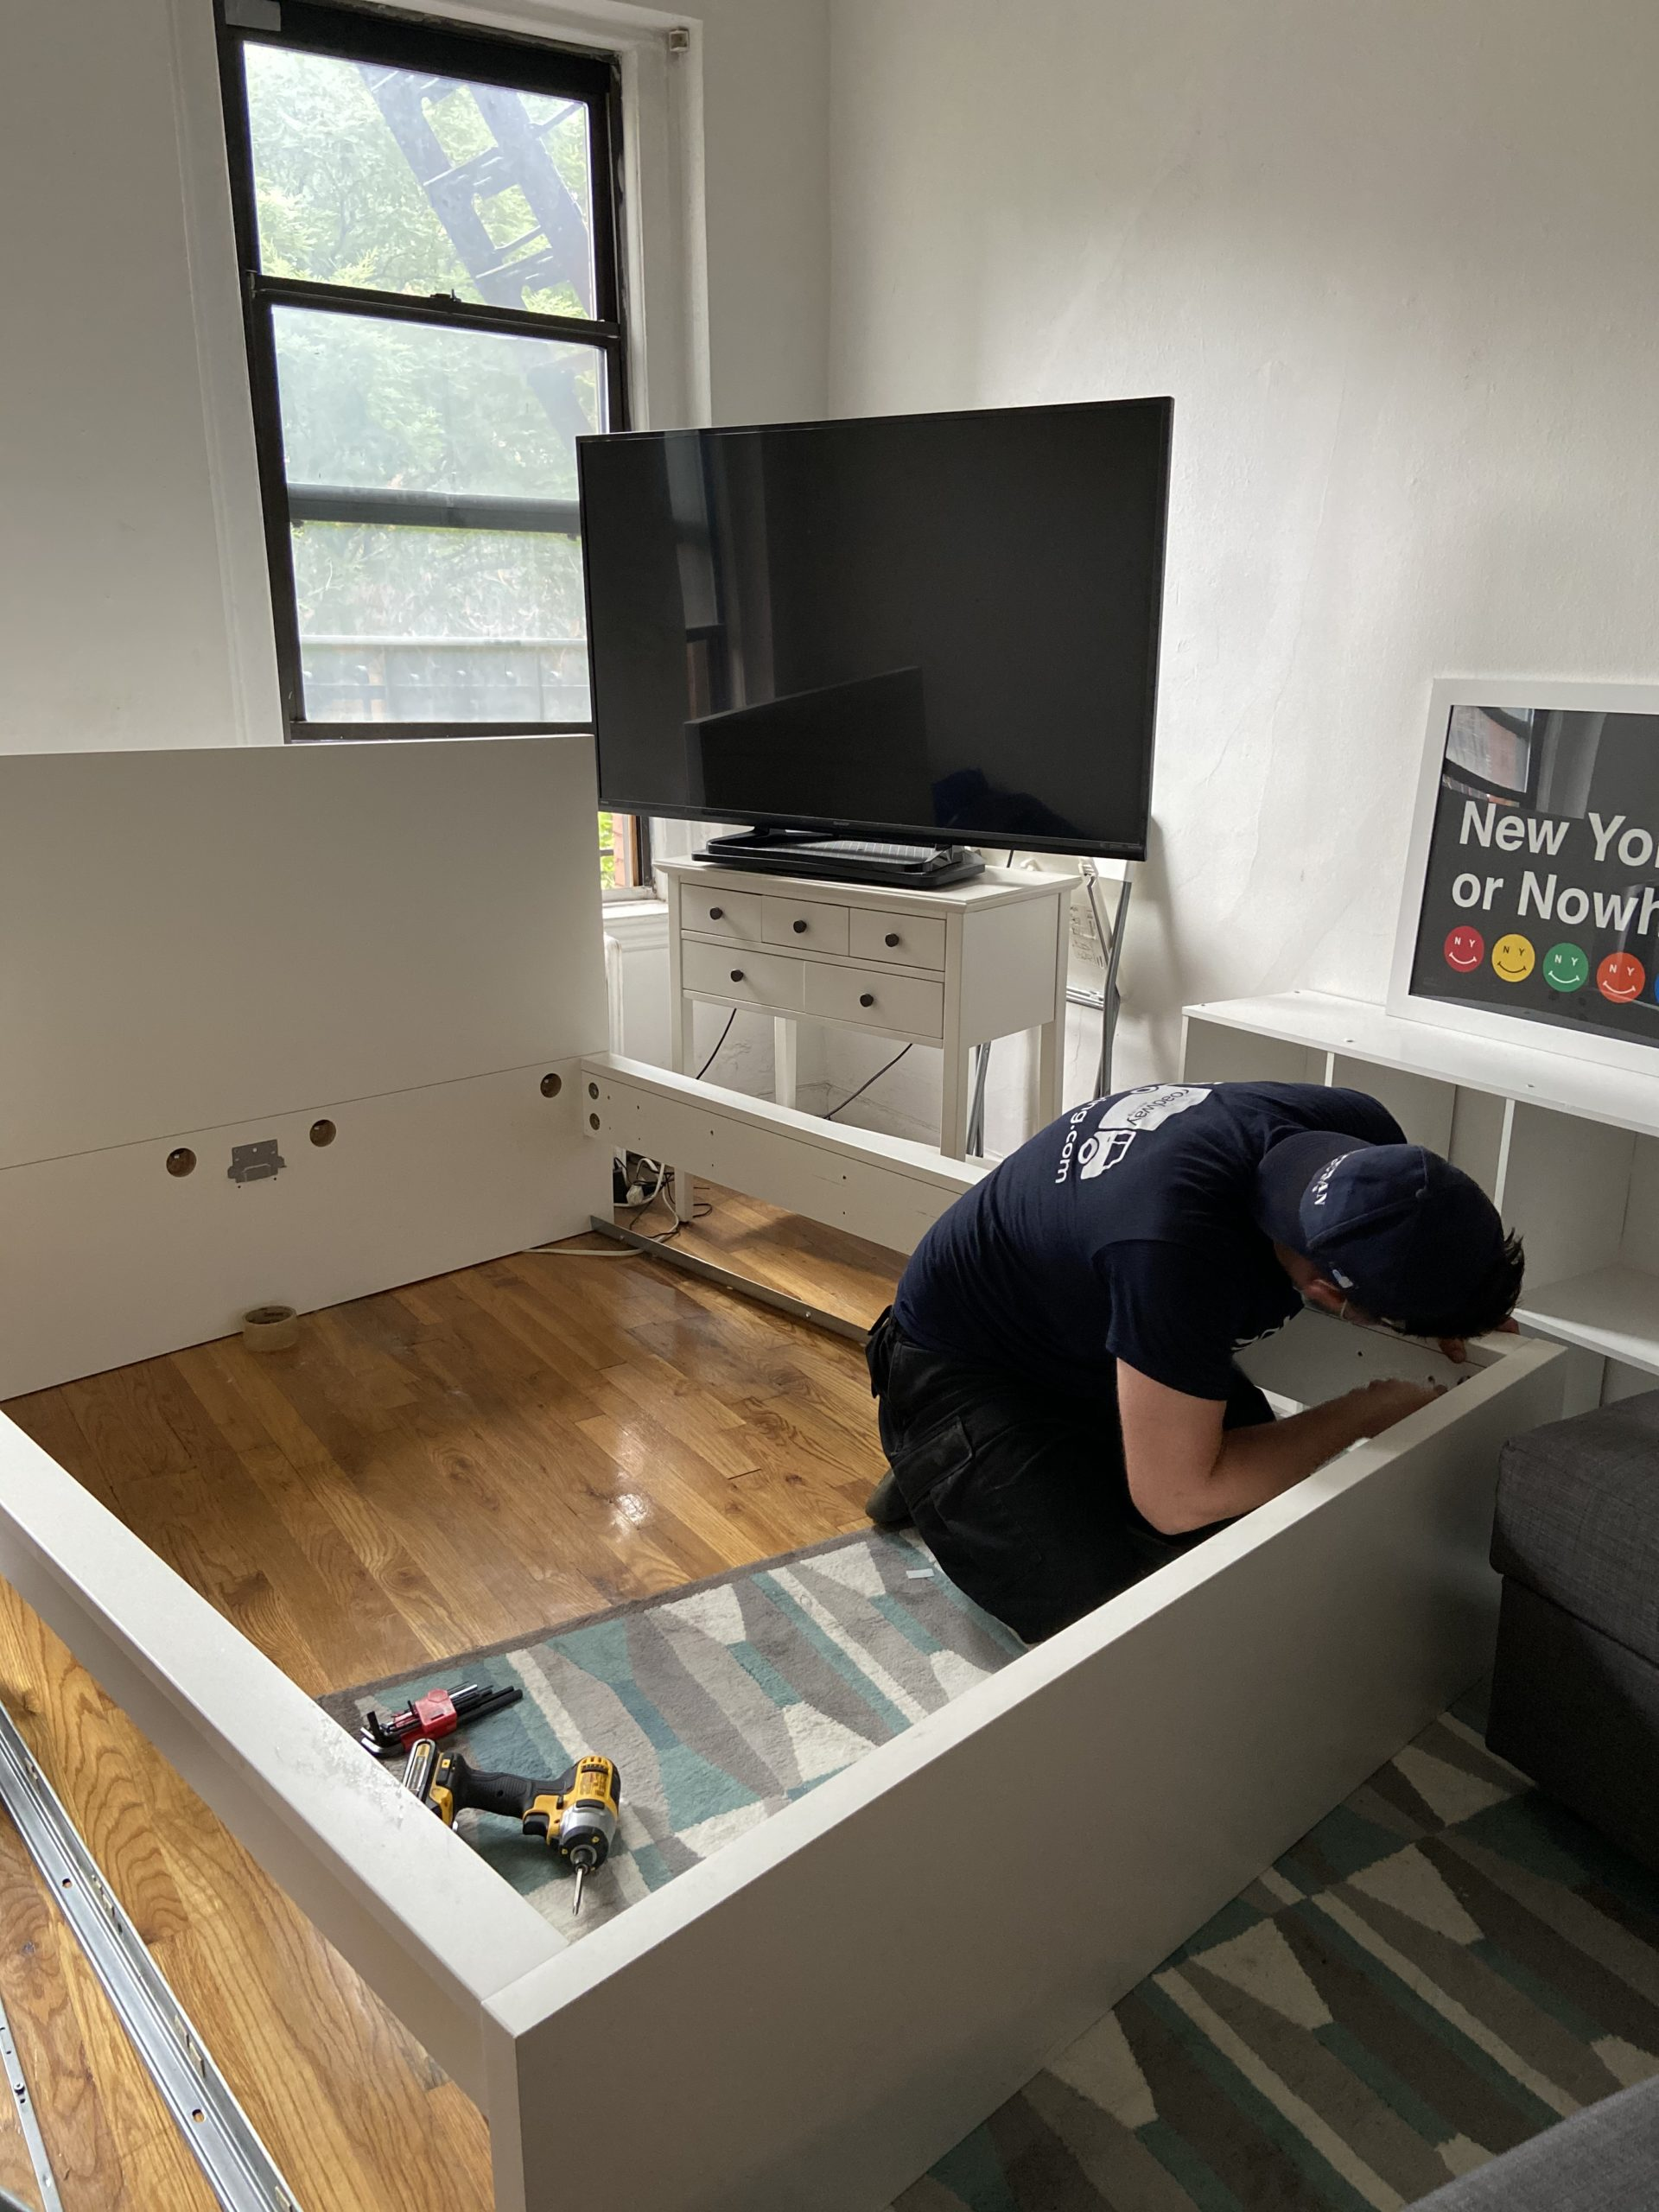 Do Moving Companies Disassemble Furniture?